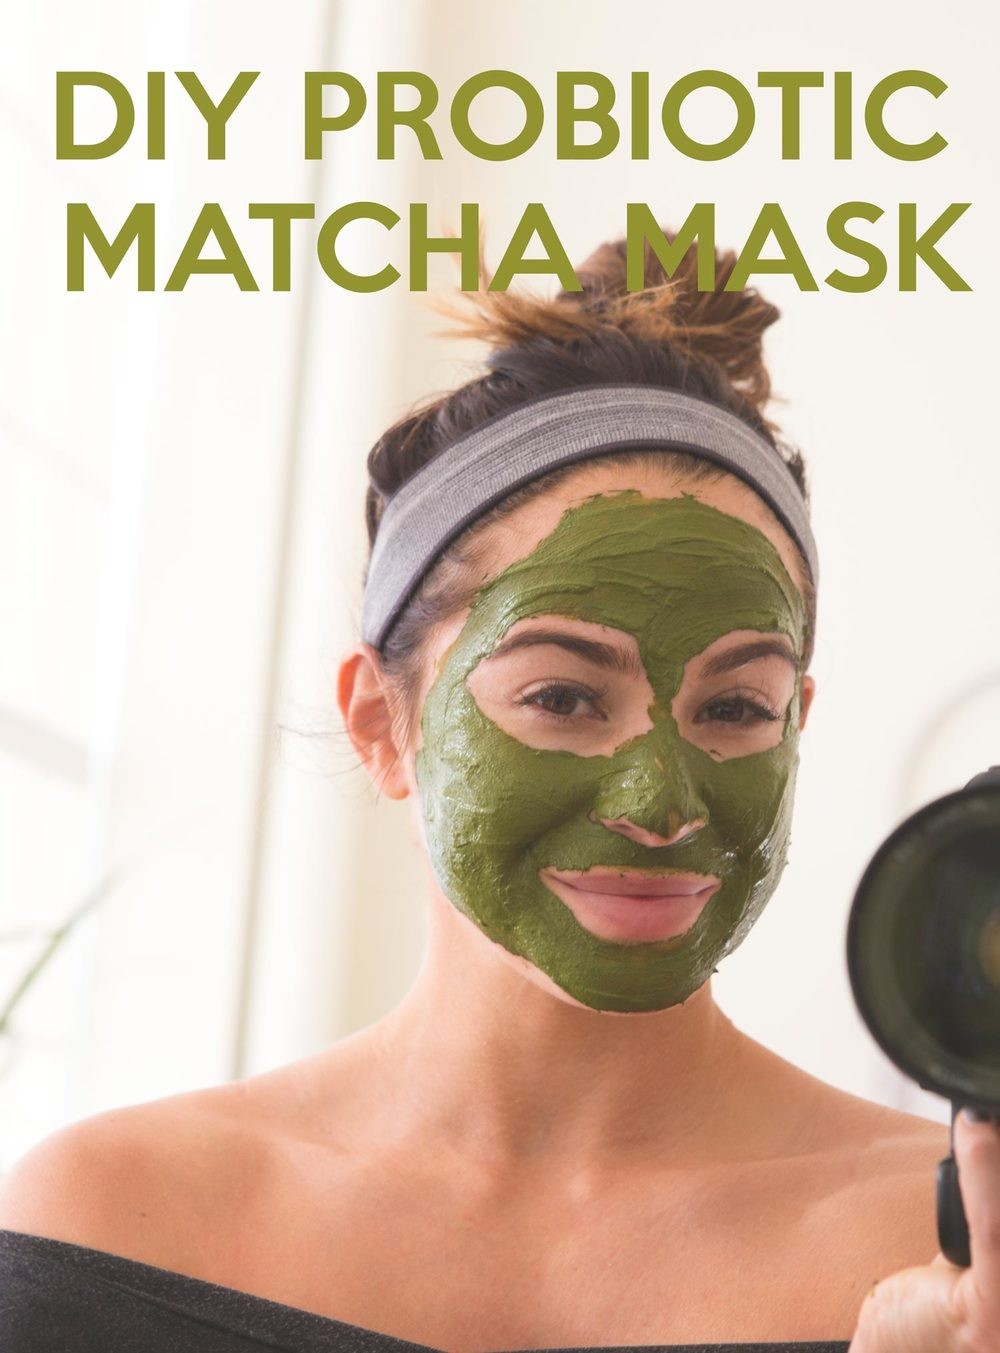 Pin it! DIY Probiotic Matcha Mask